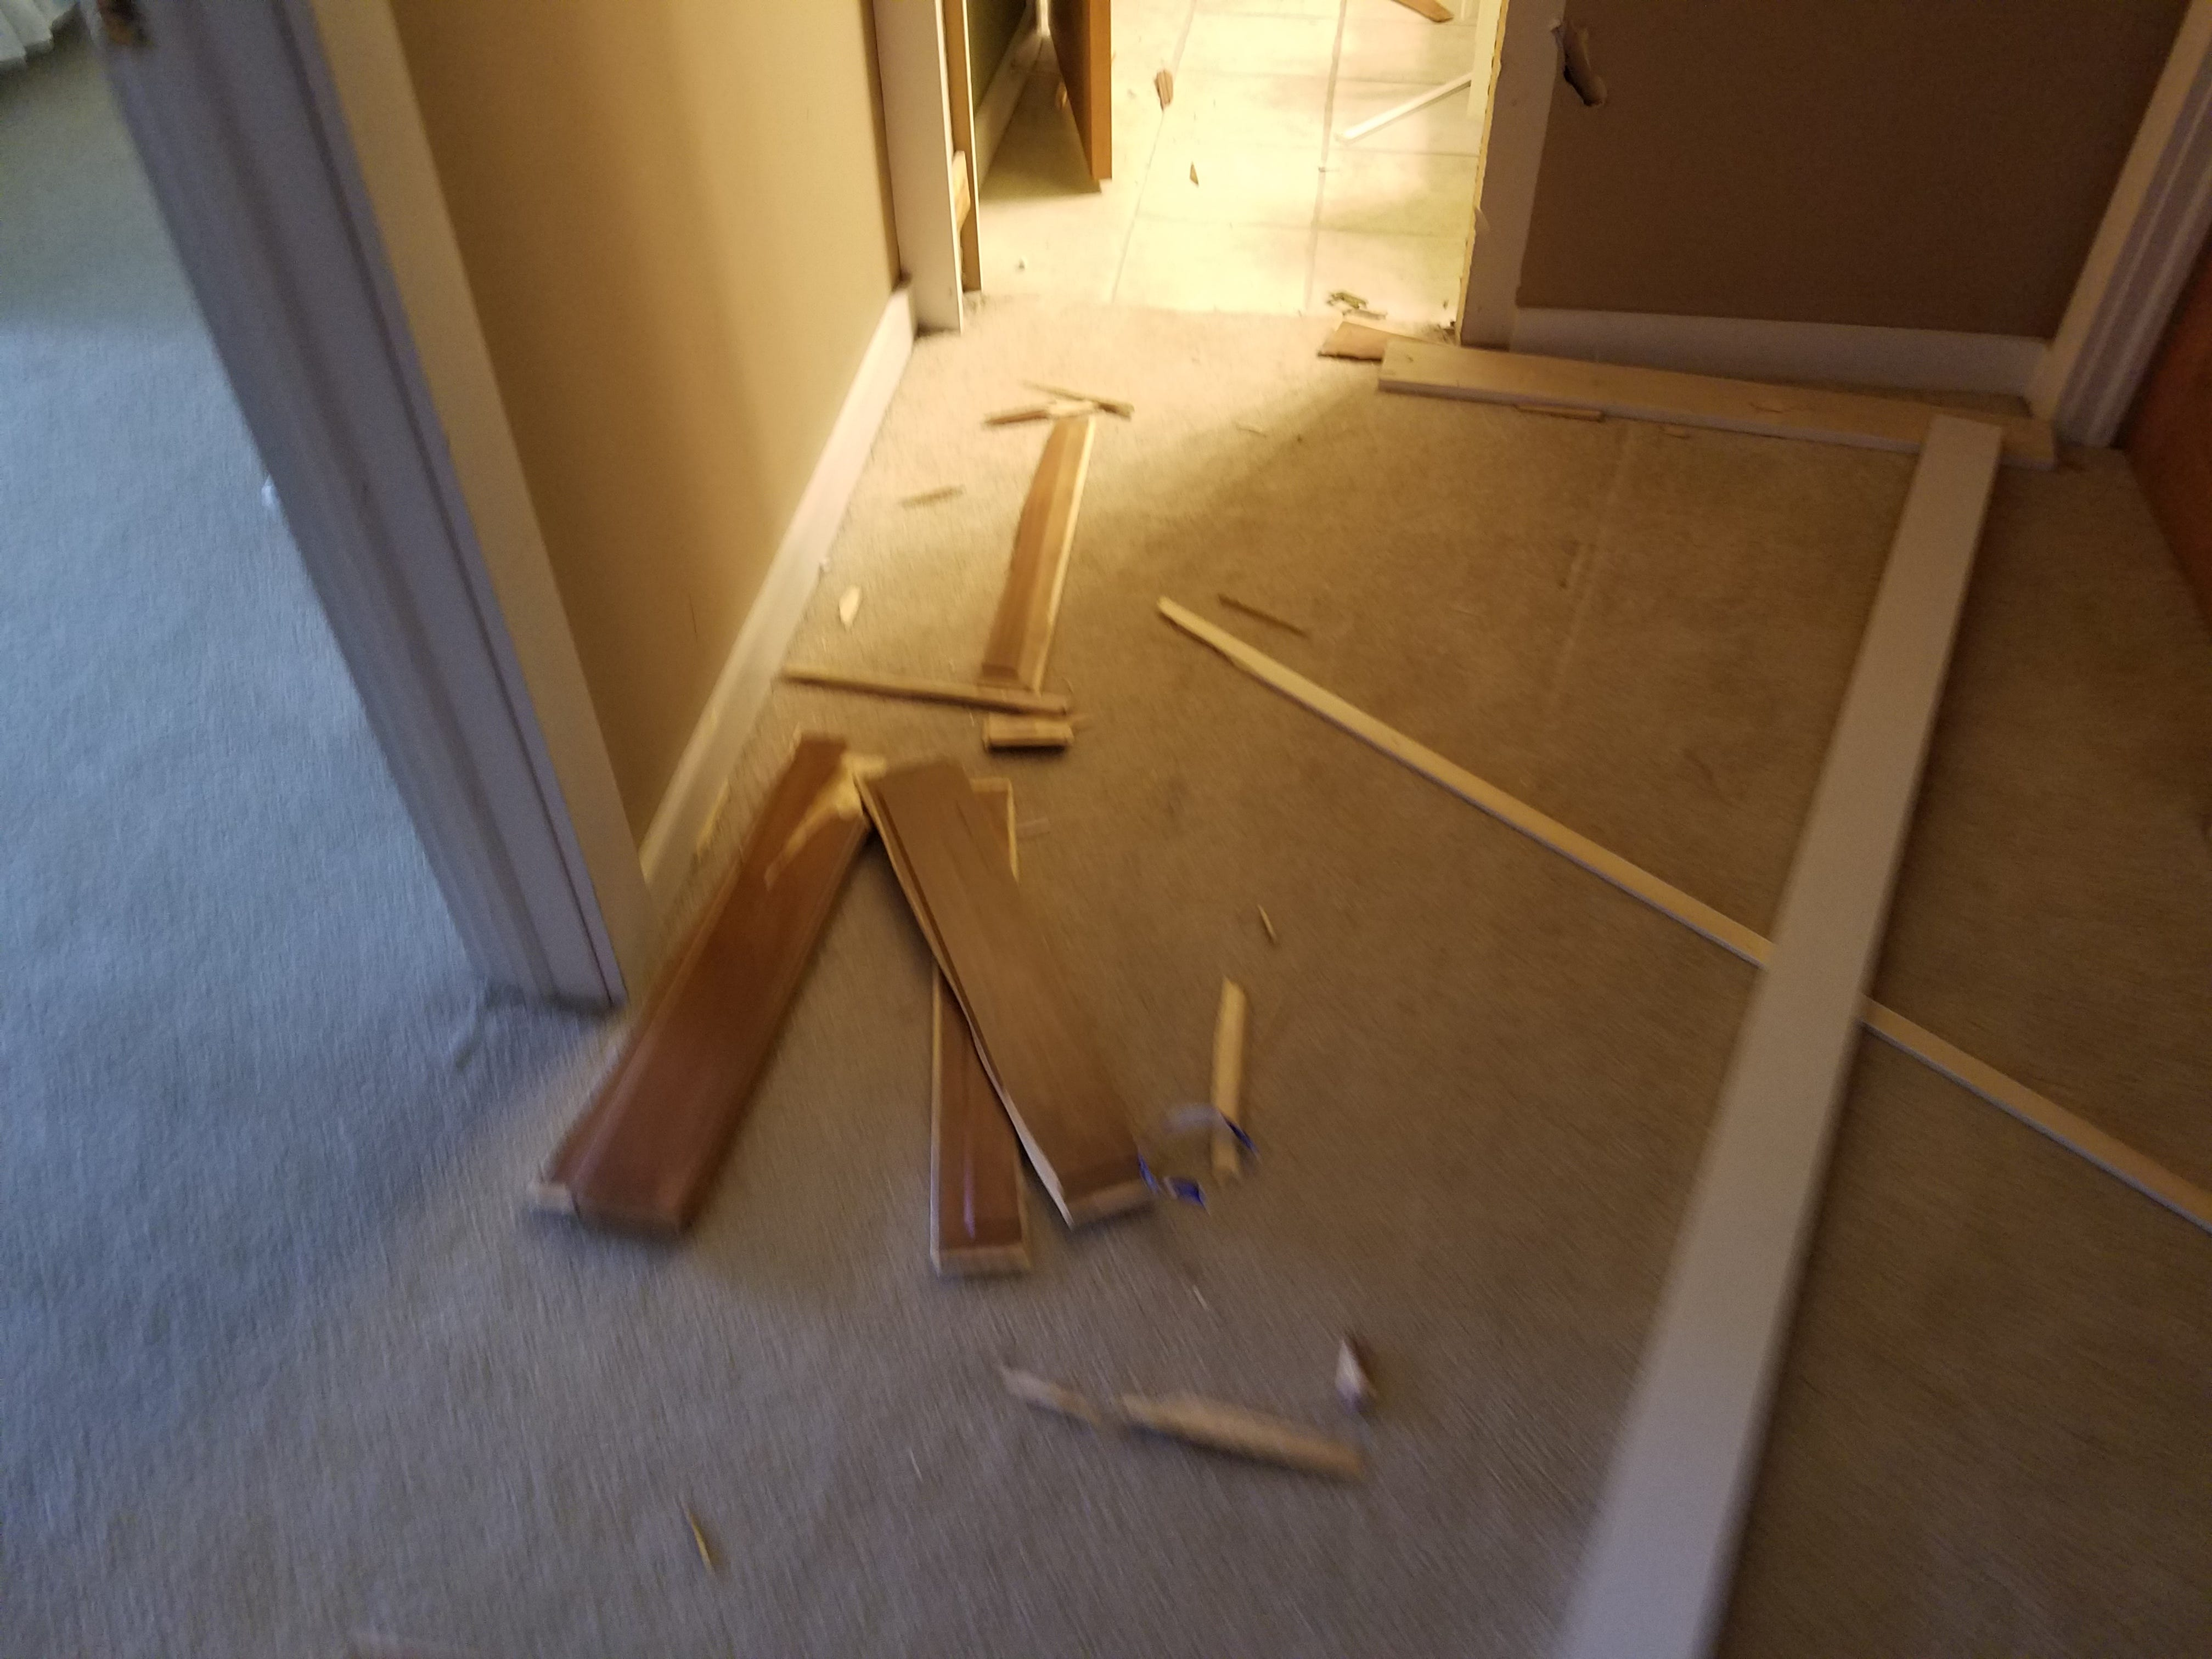 Over the course of one weekend in 2017, the University of Iowa fraternity Sigma Nu caused nearly $108,000 in damage across 28 rental houses in Galena, Illinois.  Photographs of some of the rental properties were provided to the Jo Daviess County Sheriff's Departmentat the time. They give a small glimpse into what the damage looked like.